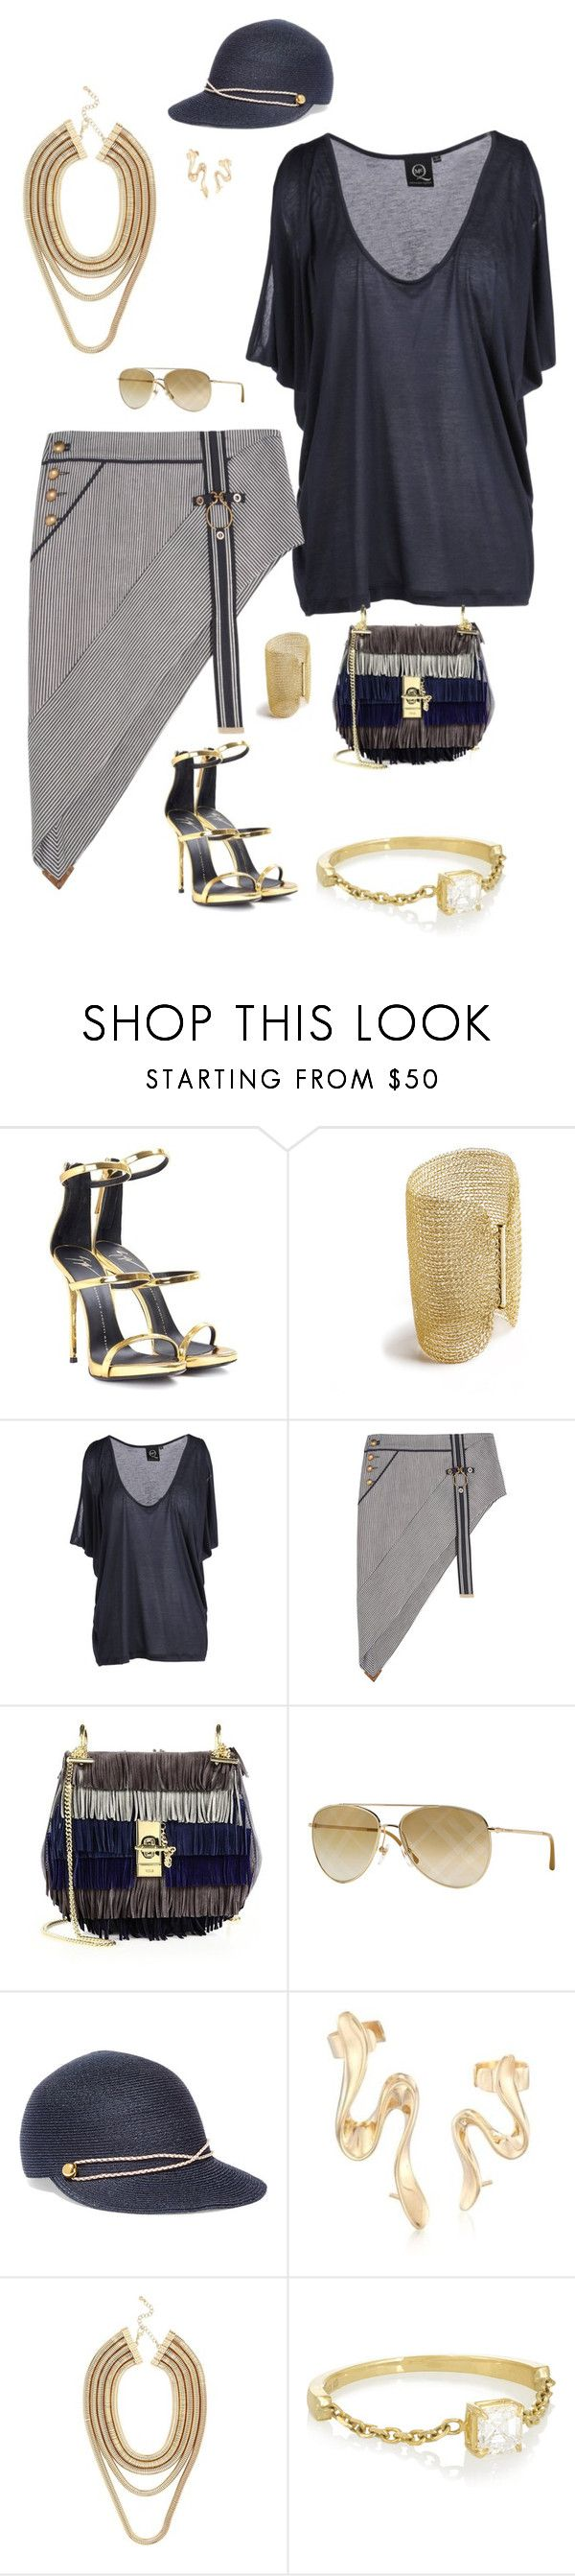 Celeb photos rachel lester rocking a new hairstyle classic atrl -  A Little Skirt By Riquee Liked On Polyvore Featuring Giuseppe Zanotti Yoola